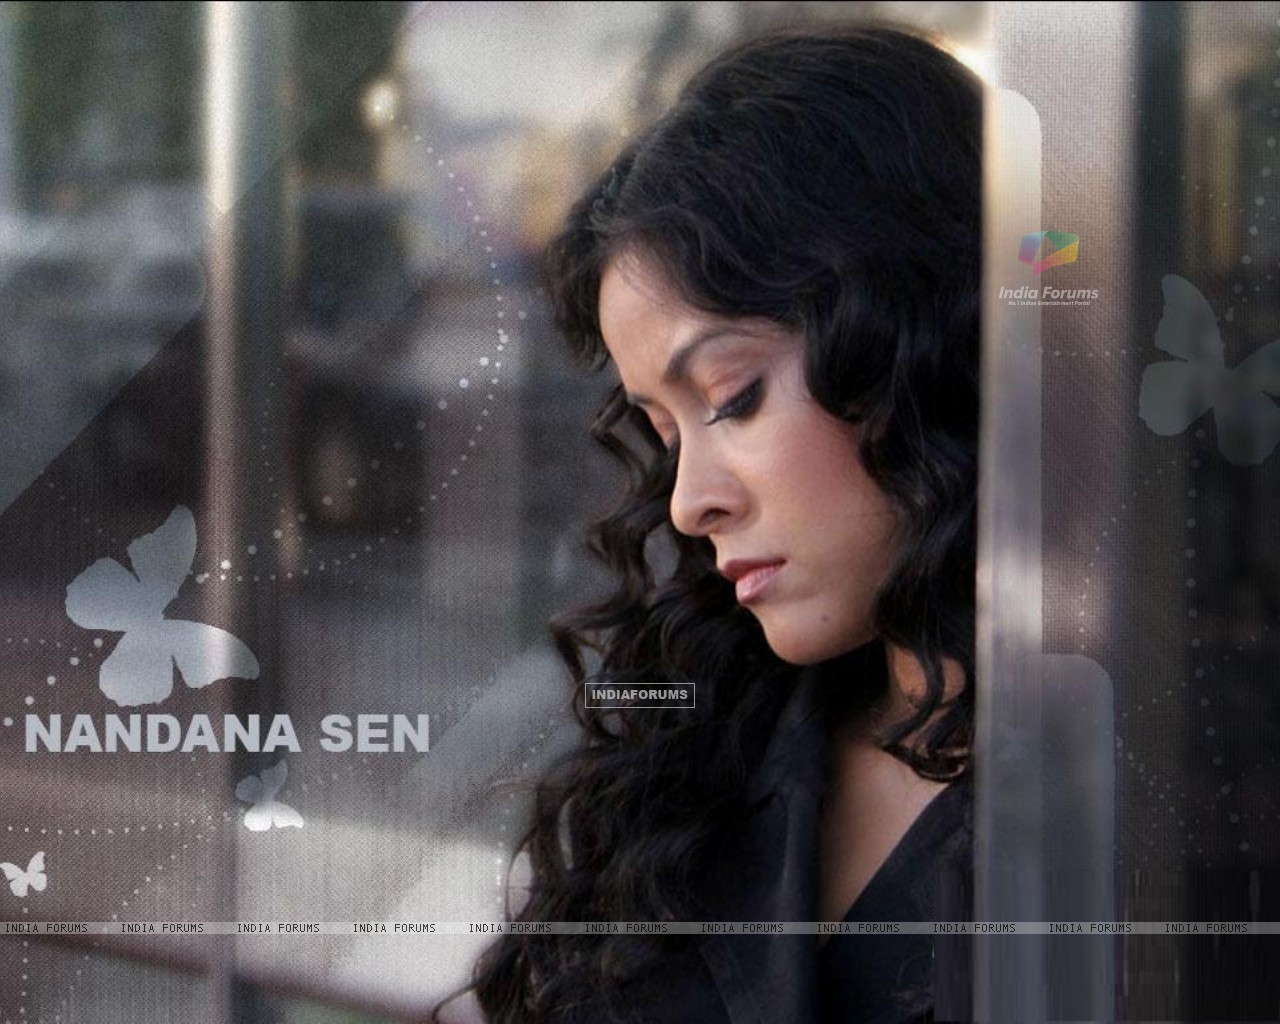 Nandana Sen - Wallpaper Hot